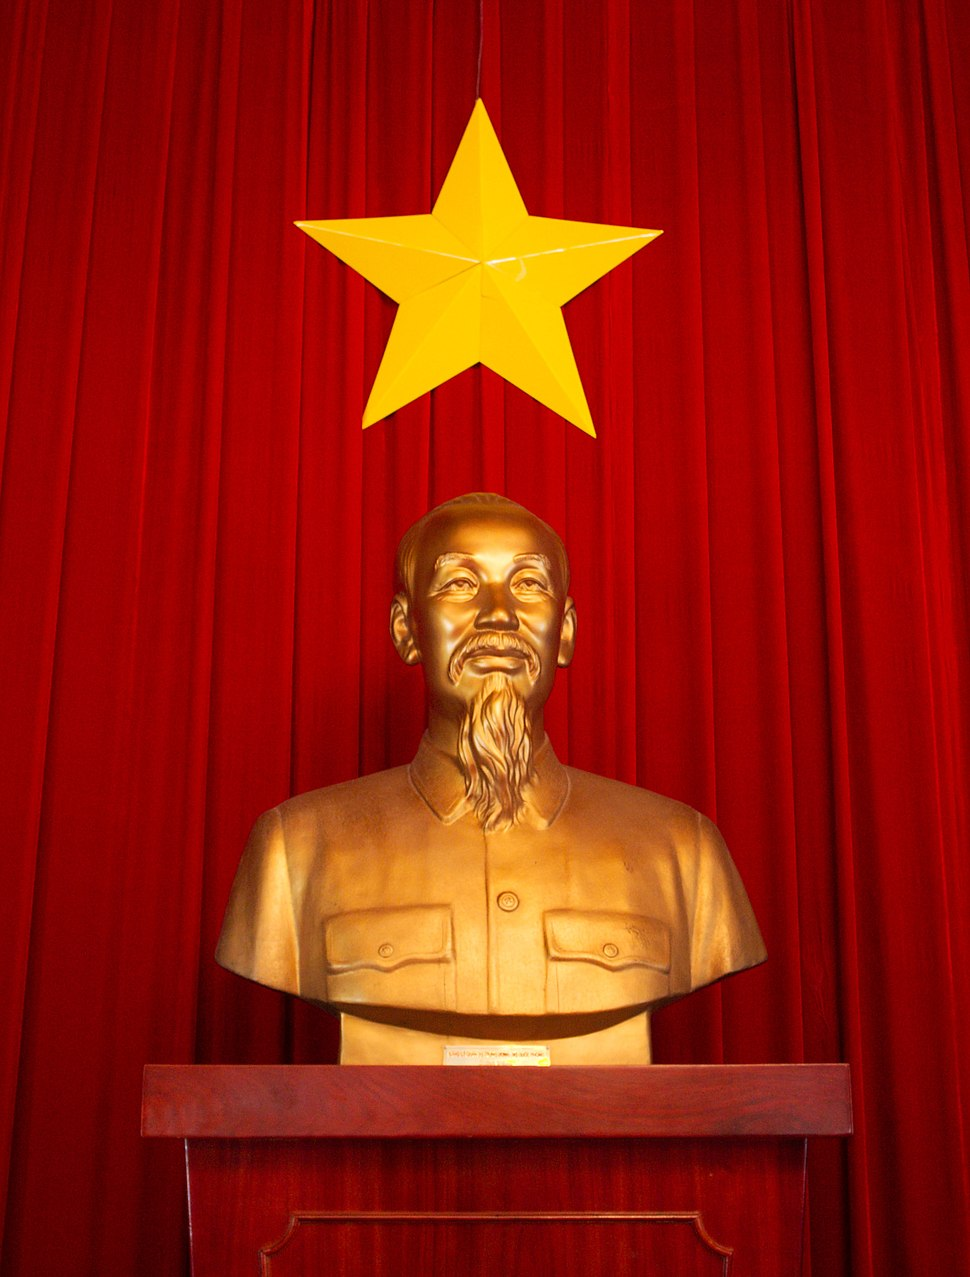 Ho Chi Minh statue and flag of Vietnam